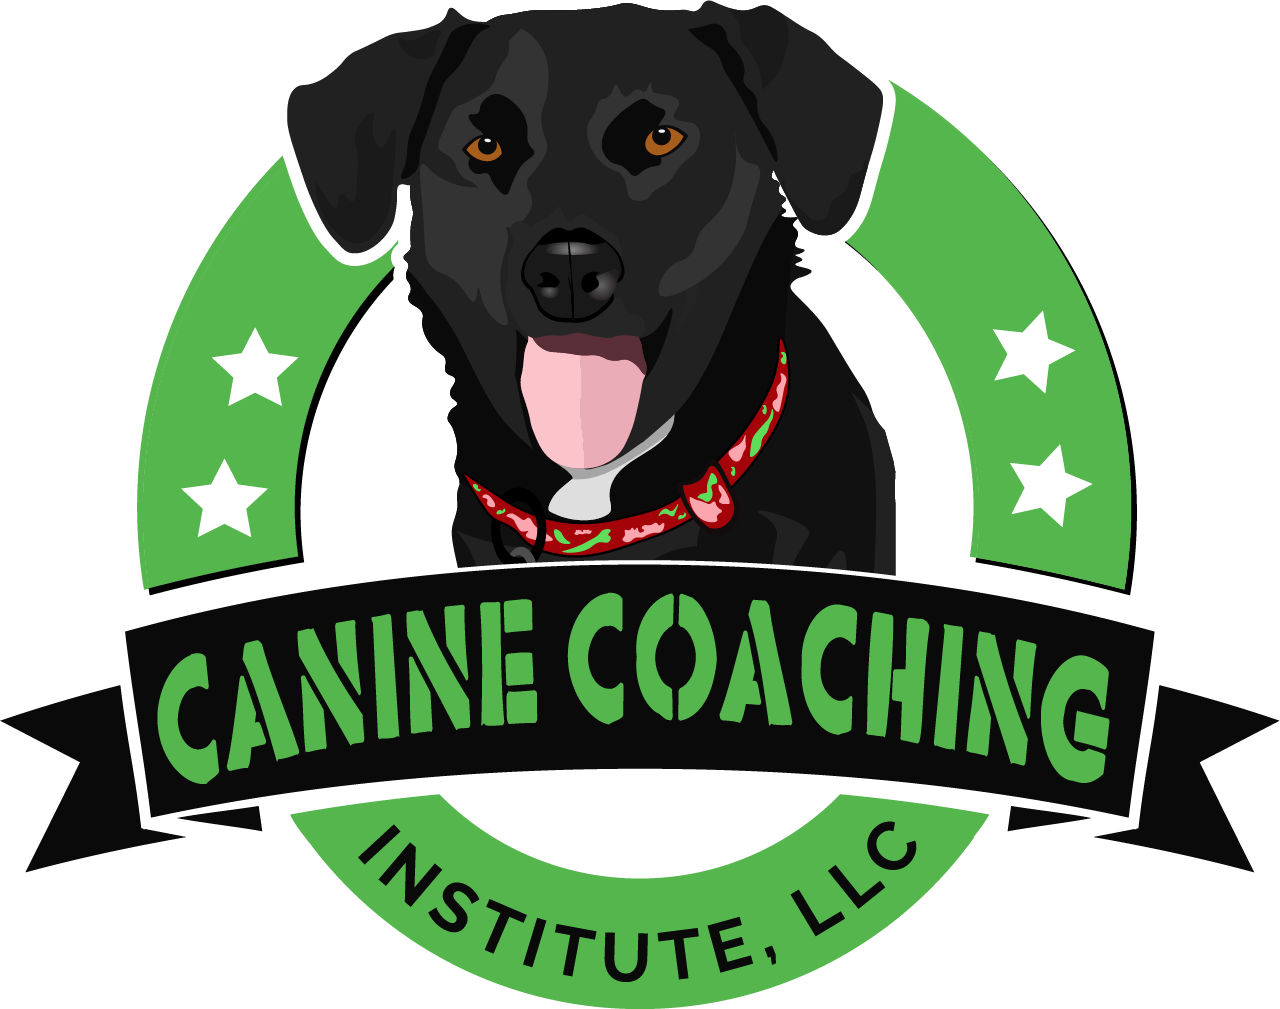 Canine Coaching Advice